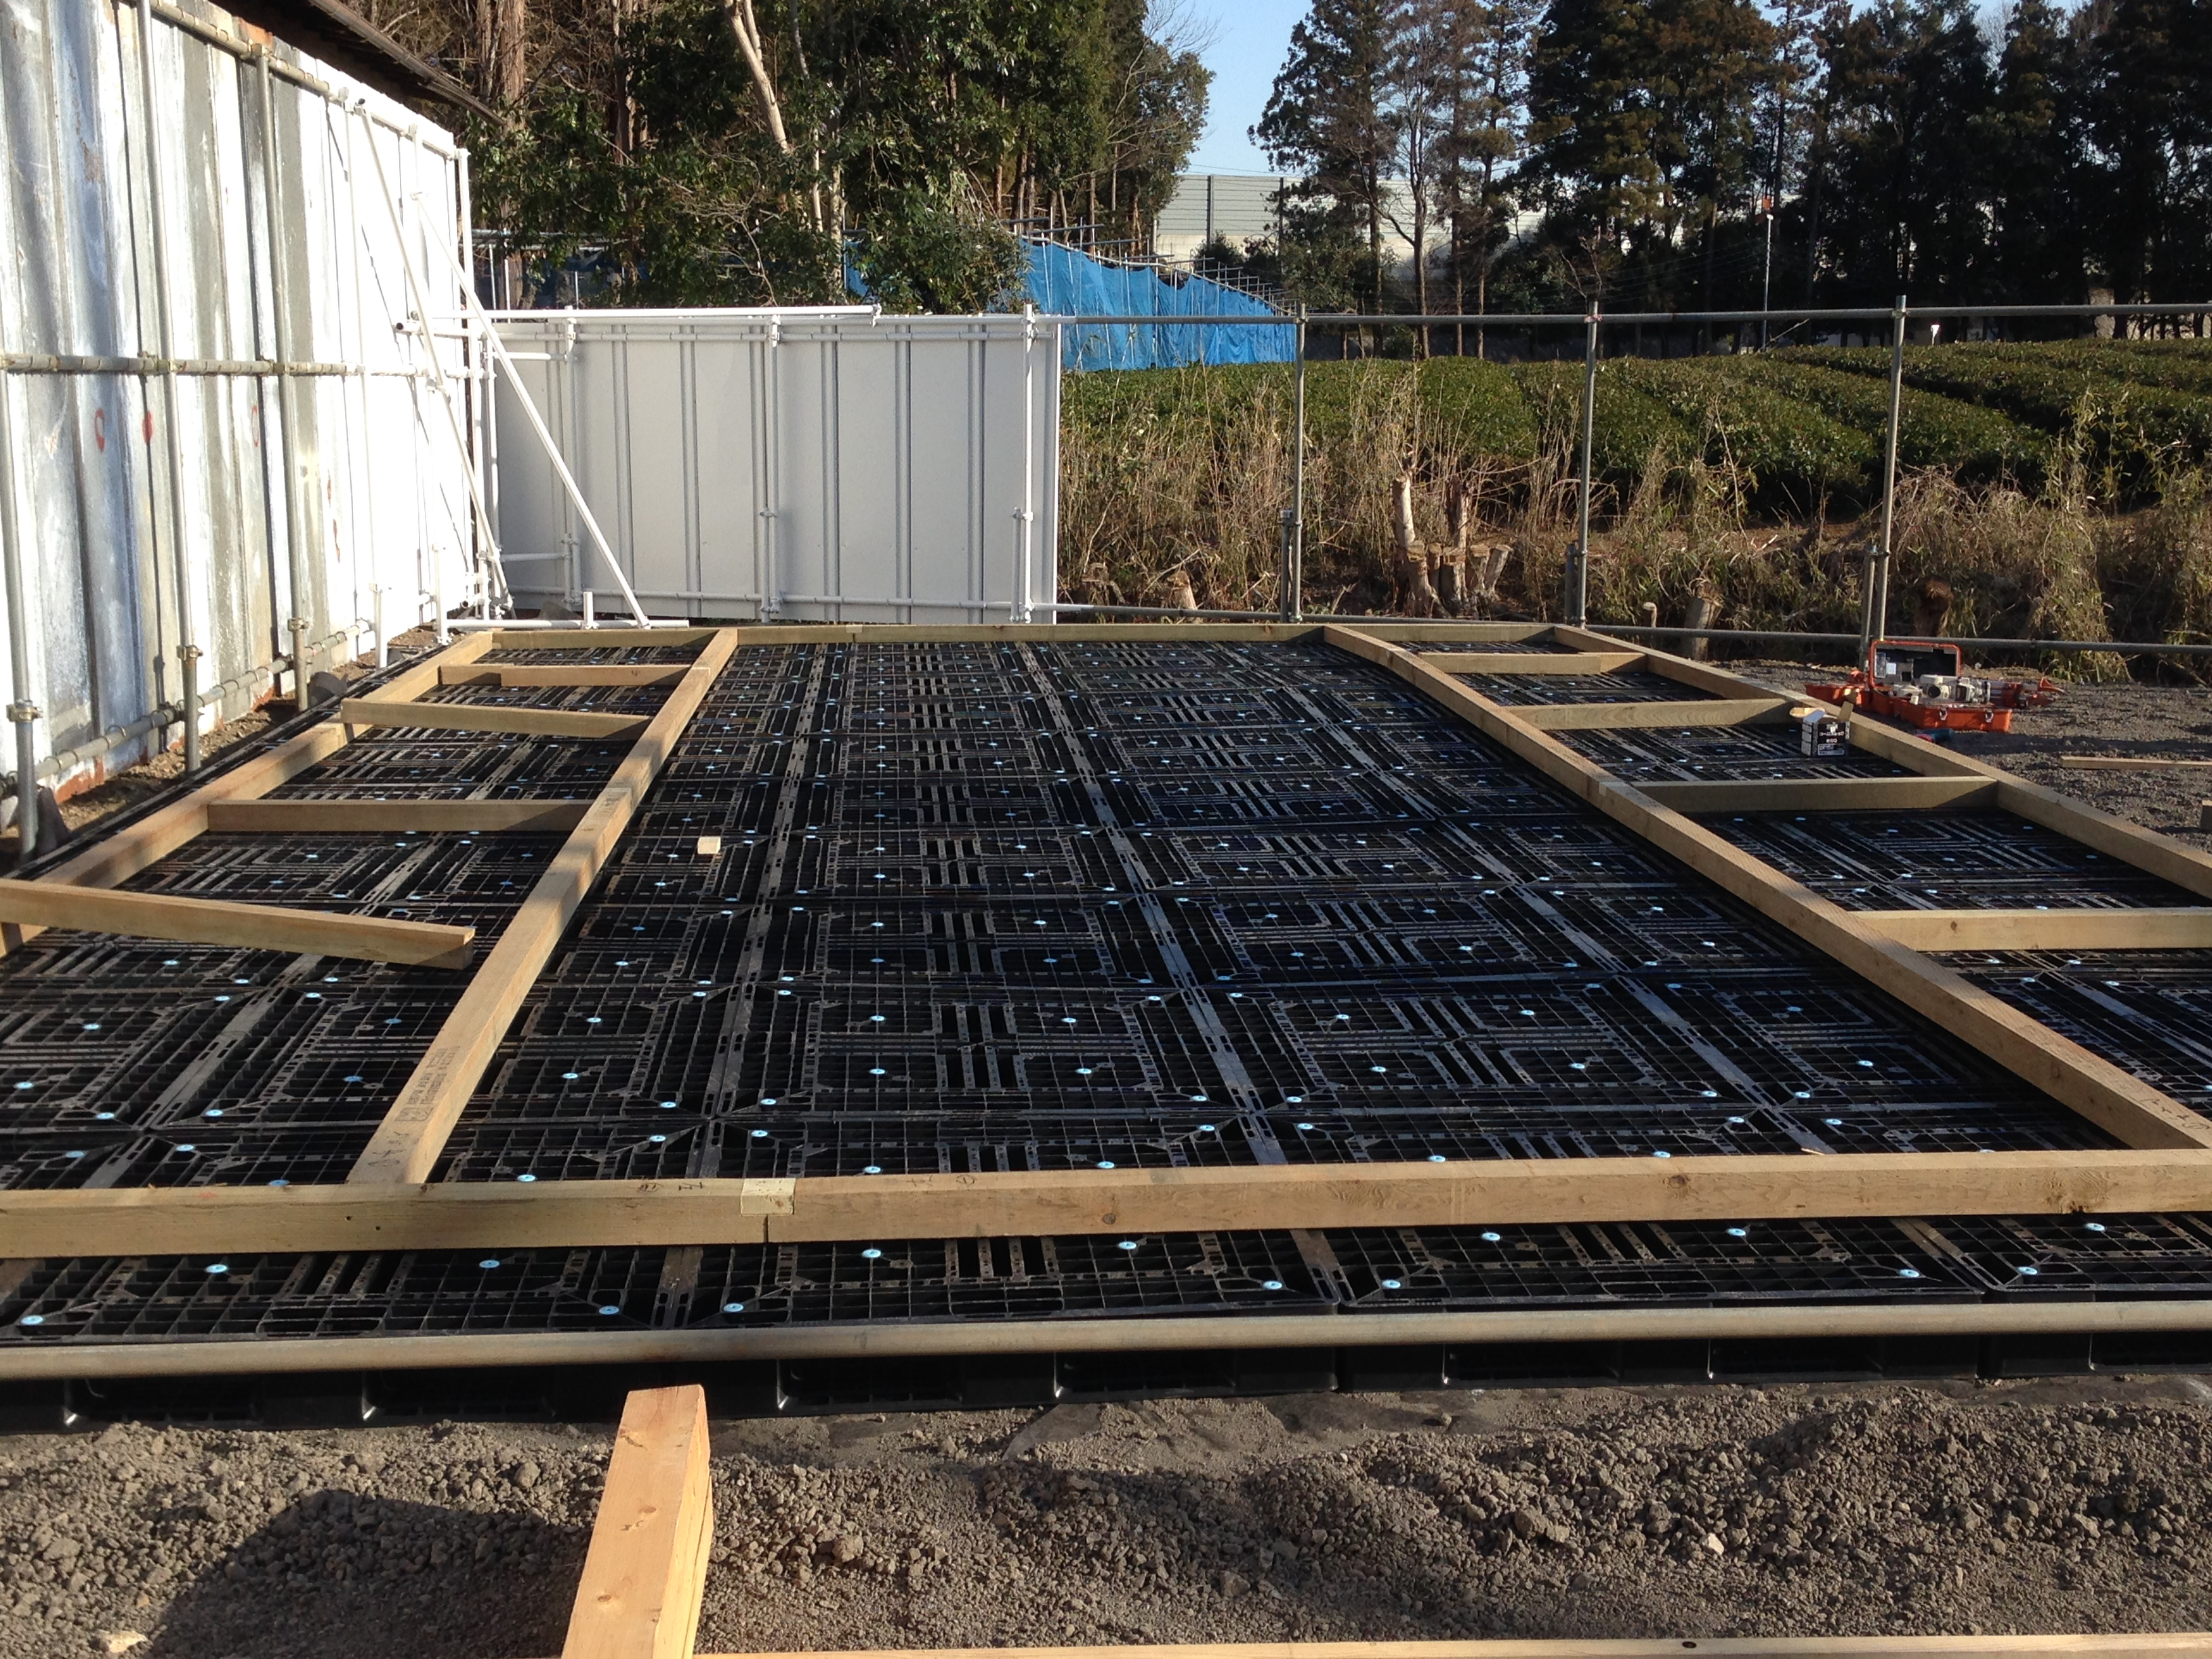 Laying greenhouse foundation